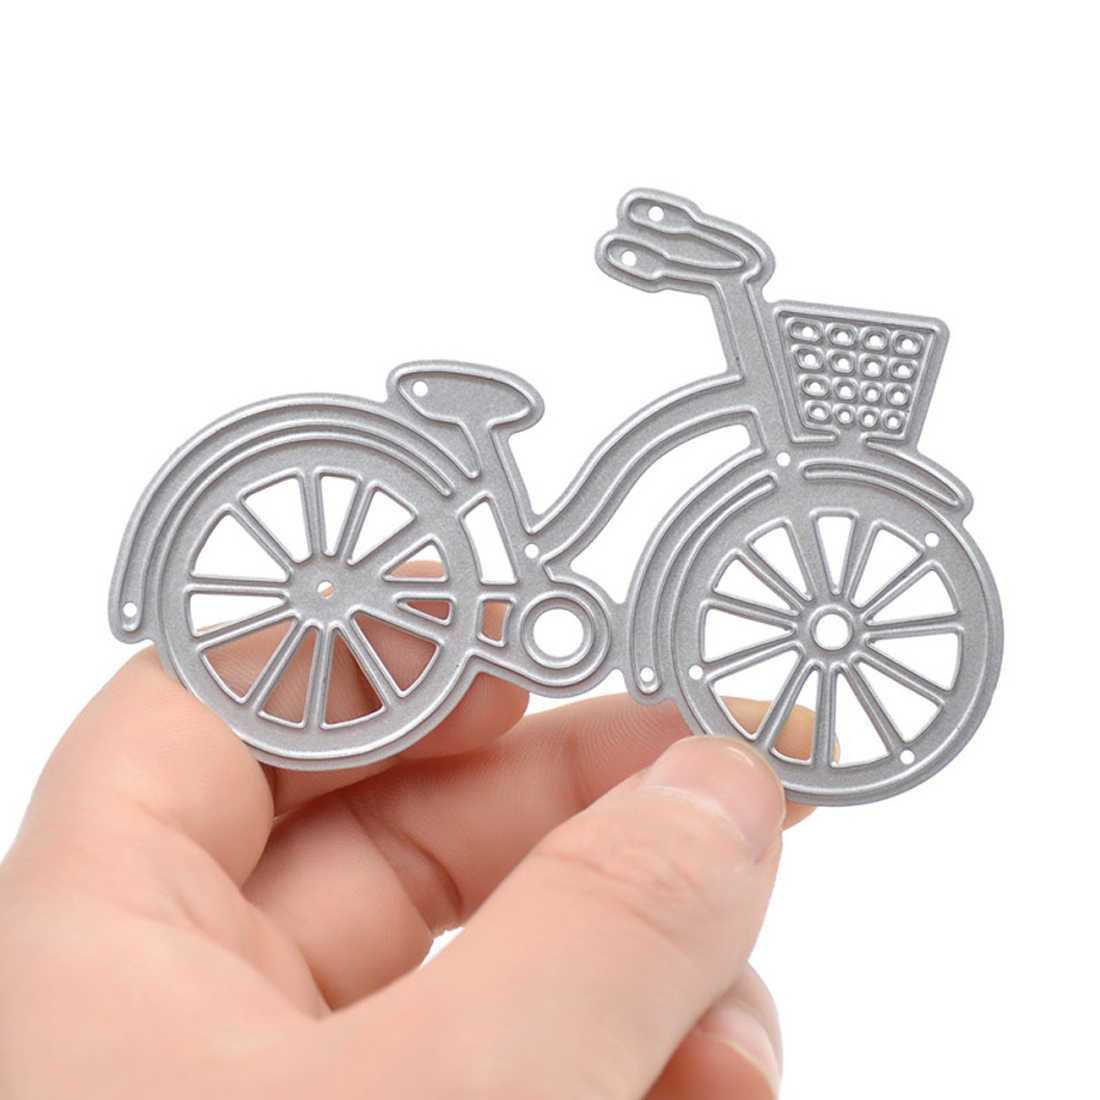 New Arrival Bicycle cutting dies Metal Cutting Dies Stencils for DIY Scrapbooking dies Decorative Craft Photo Album Embossing